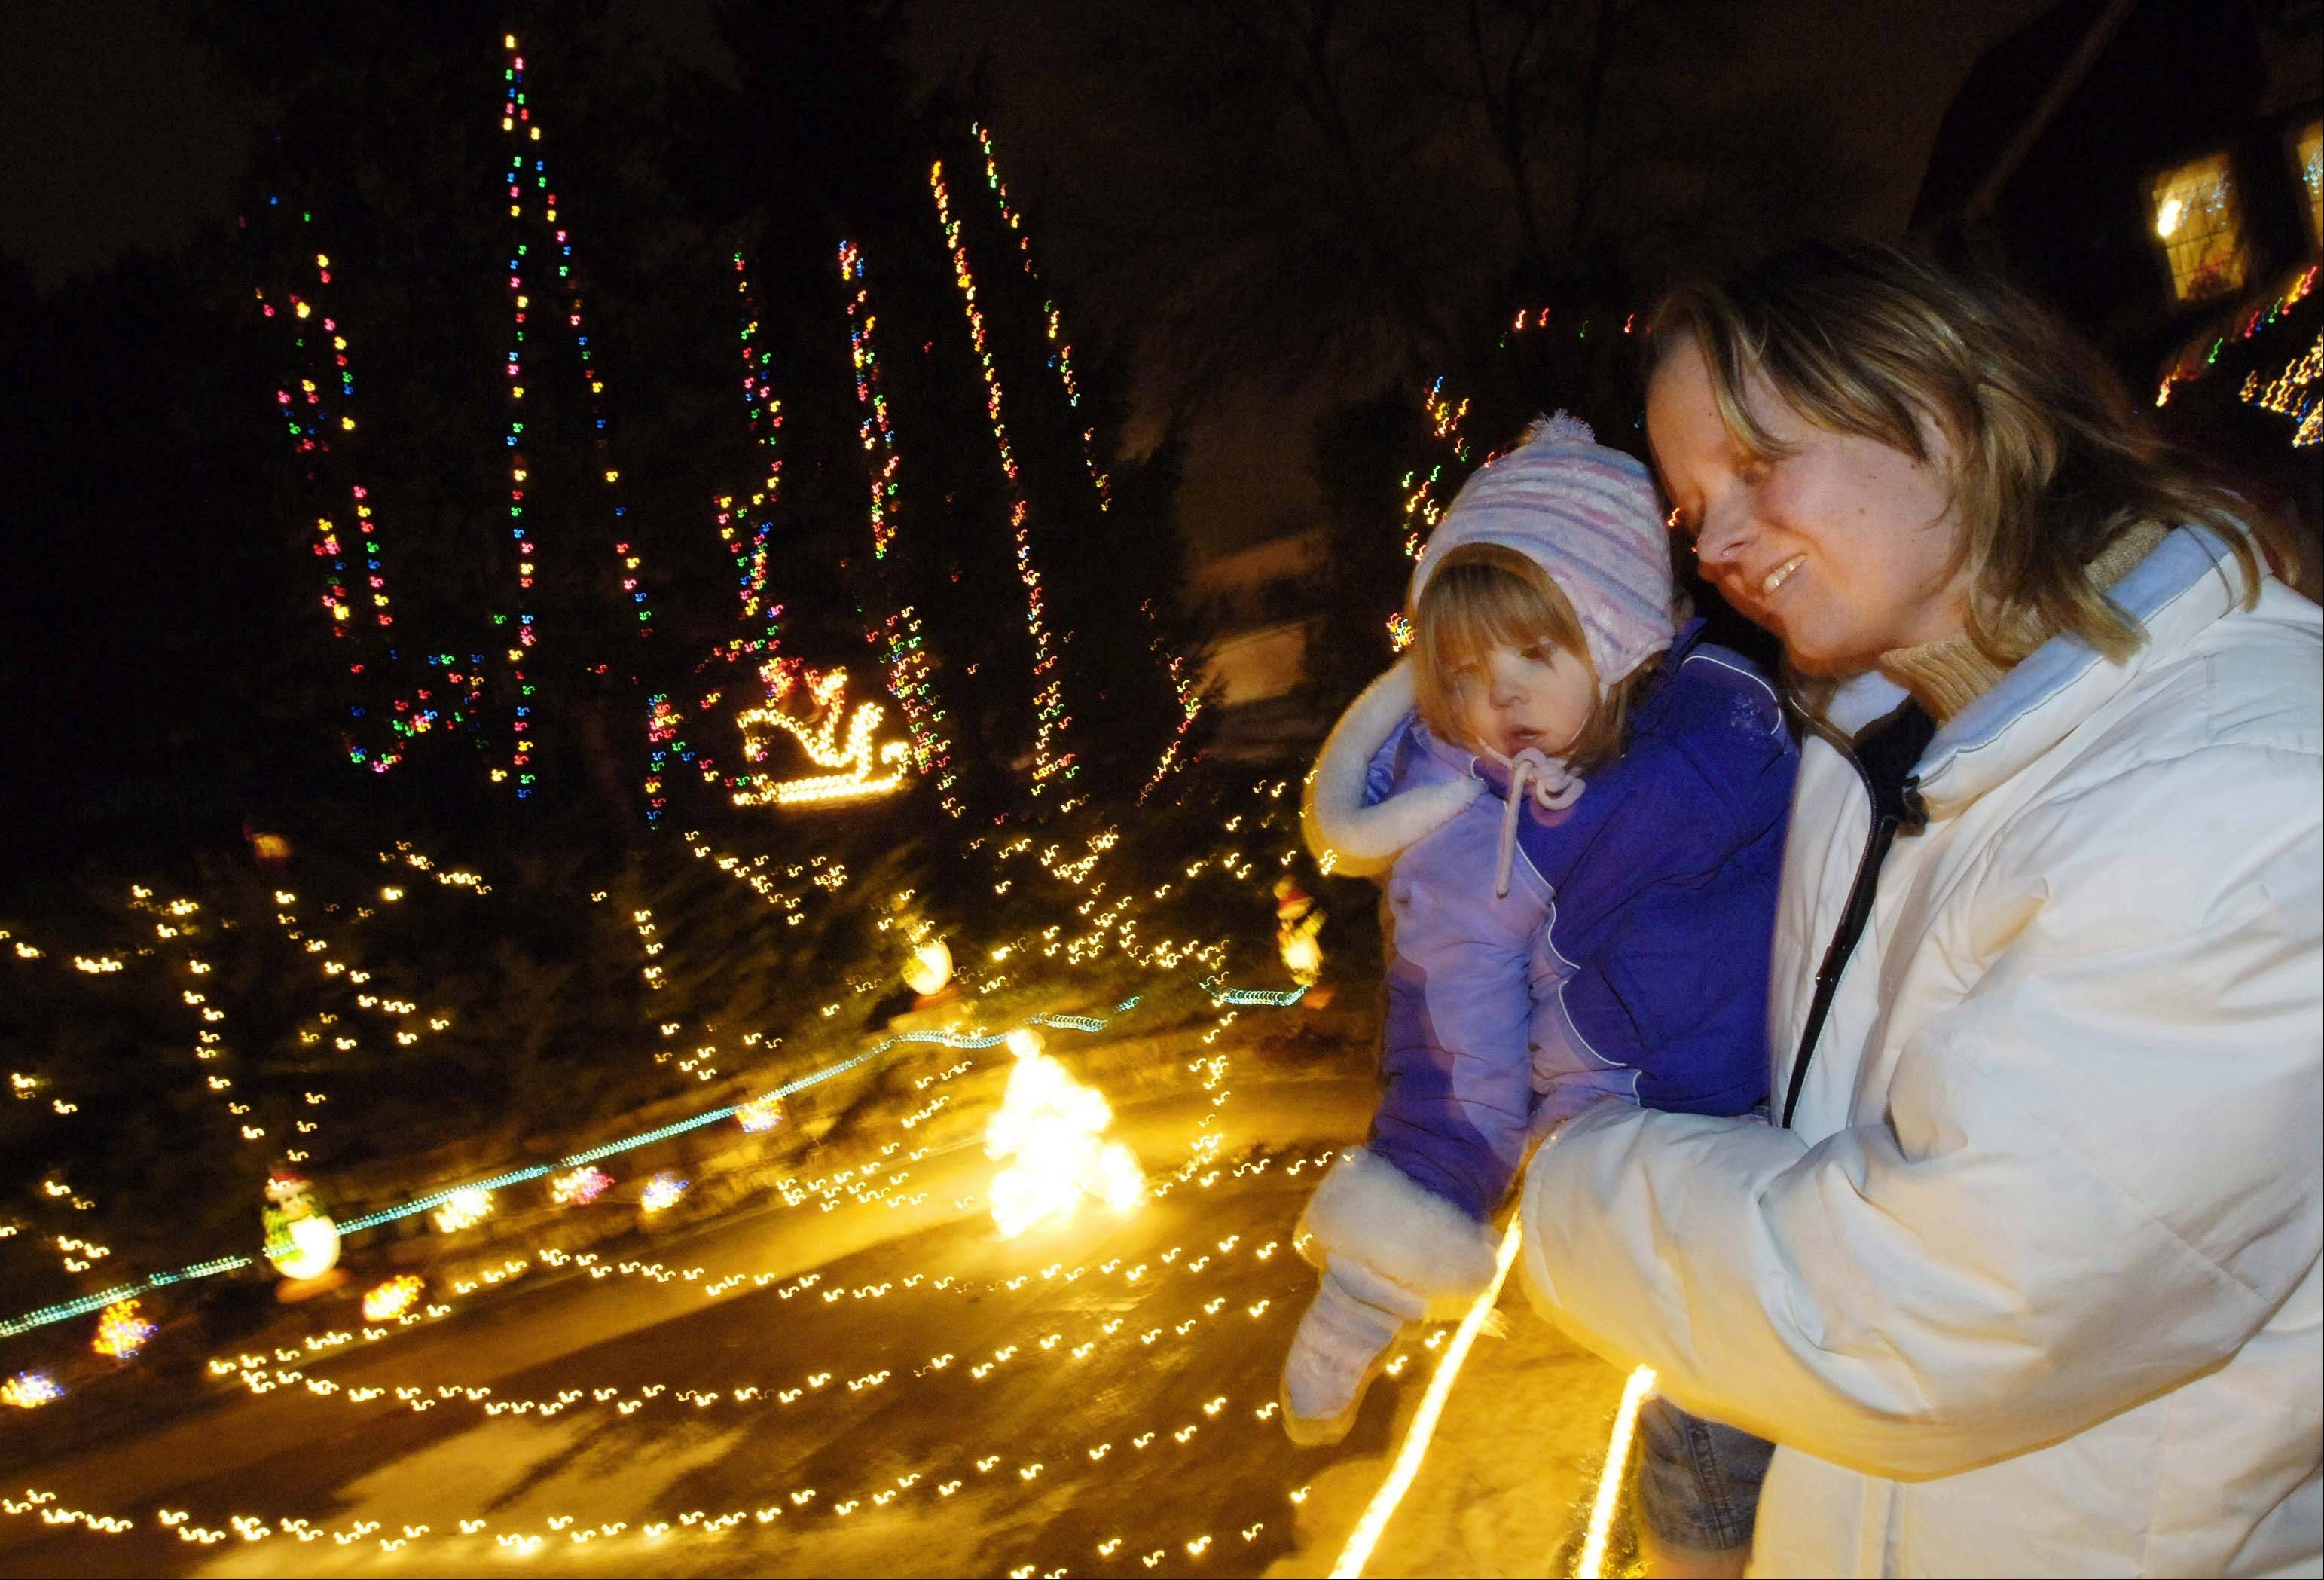 Lilacia Park will become festive and bright at 6 p.m. Saturday, Dec. 1, during the seventh annual Jinglebell Jubilee holiday festival.